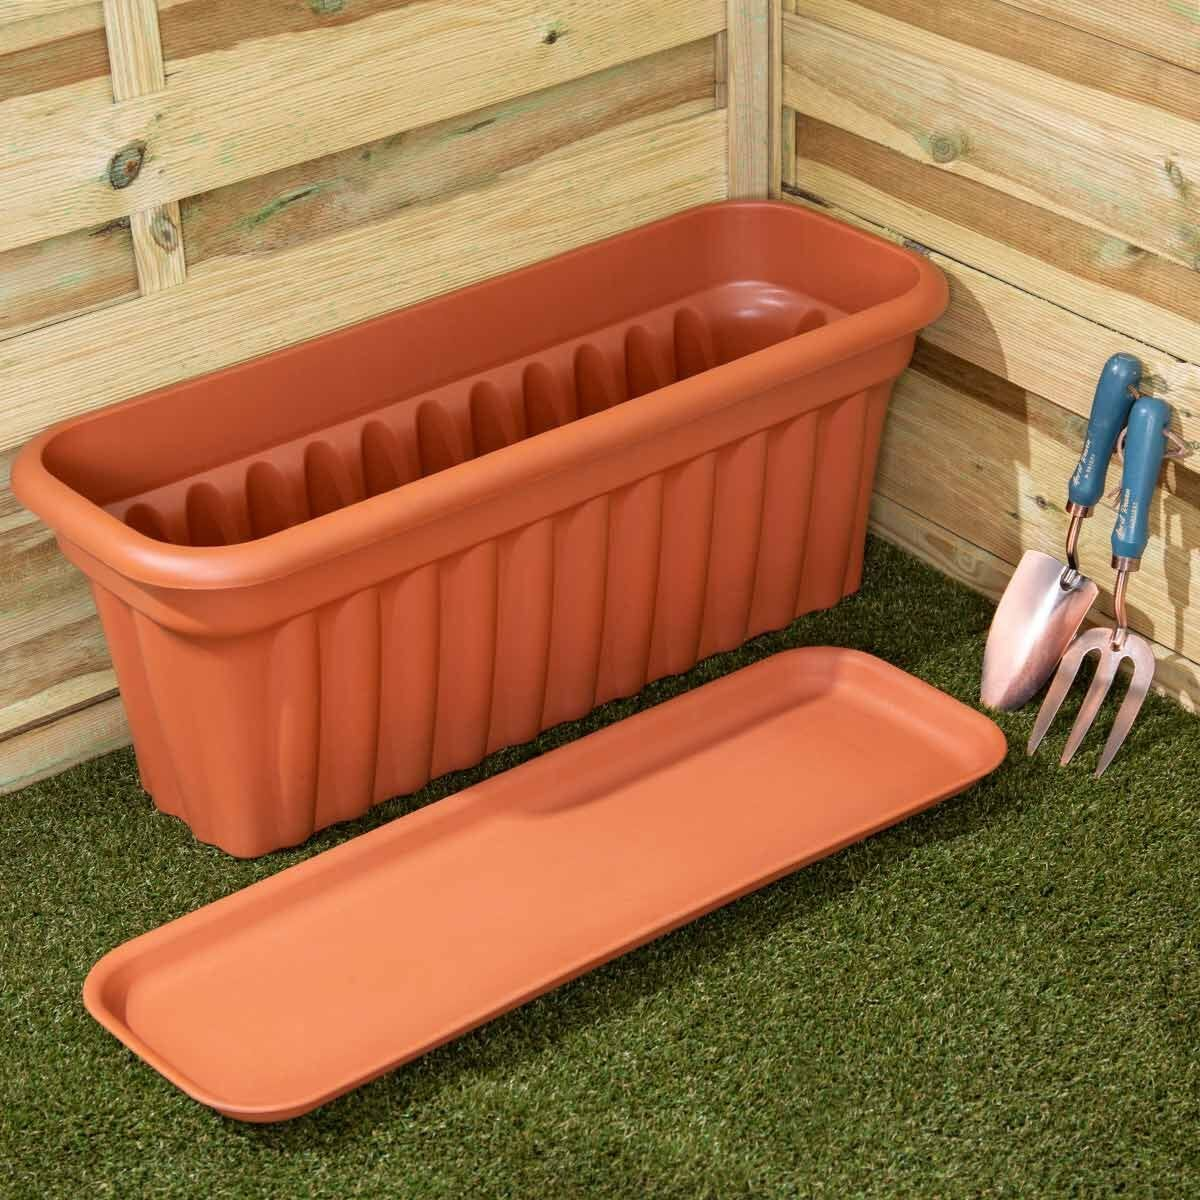 Wham Vista Traditional Trough with Tray 80cm Set of 3 Terracotta